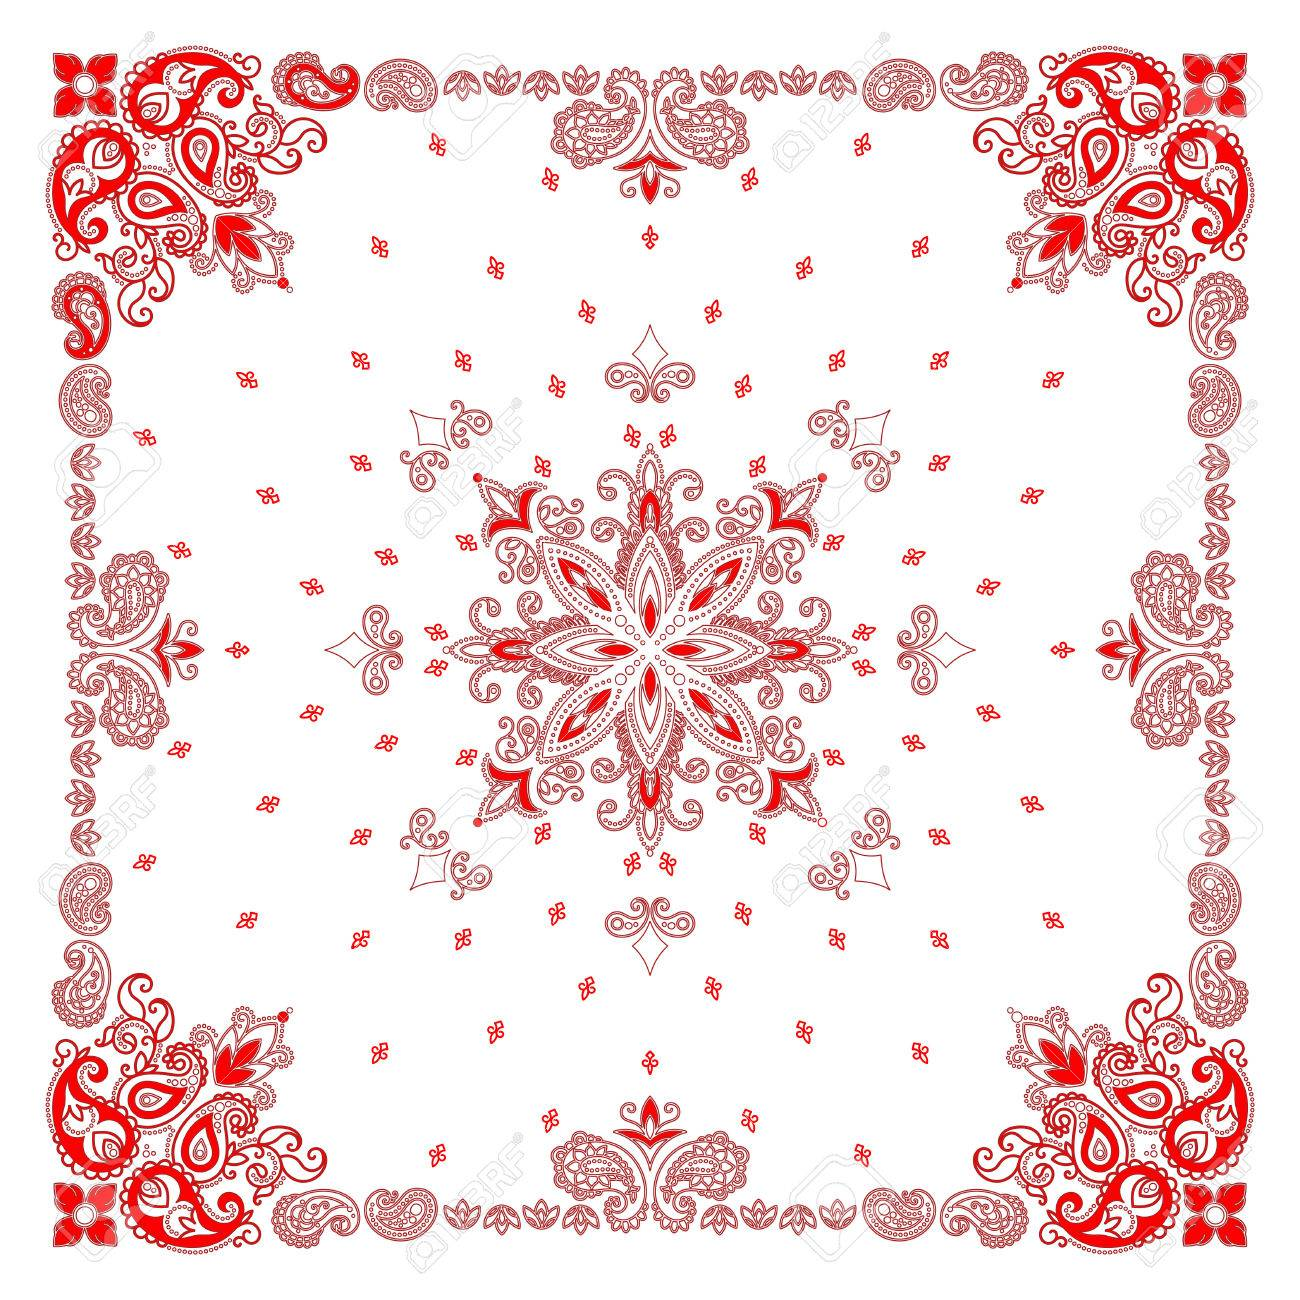 Vector ornament paisley Bandana Print, silk neck scarf or kerchief square pattern design style for print on fabric. - 54273374